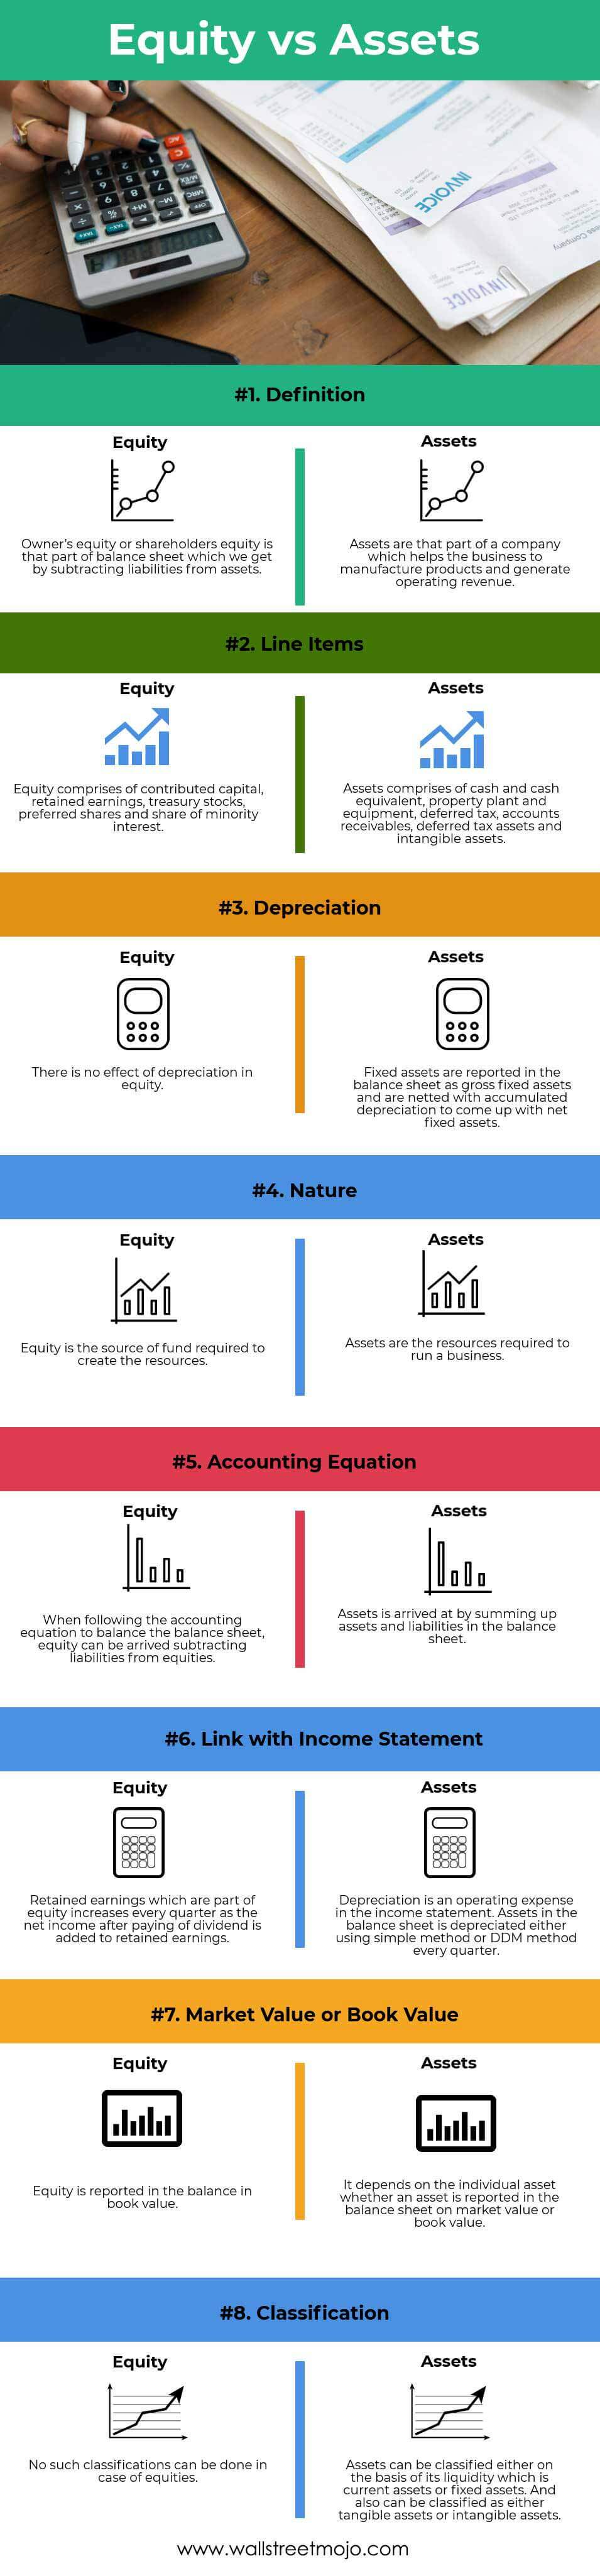 Equity-vs-Assets-info